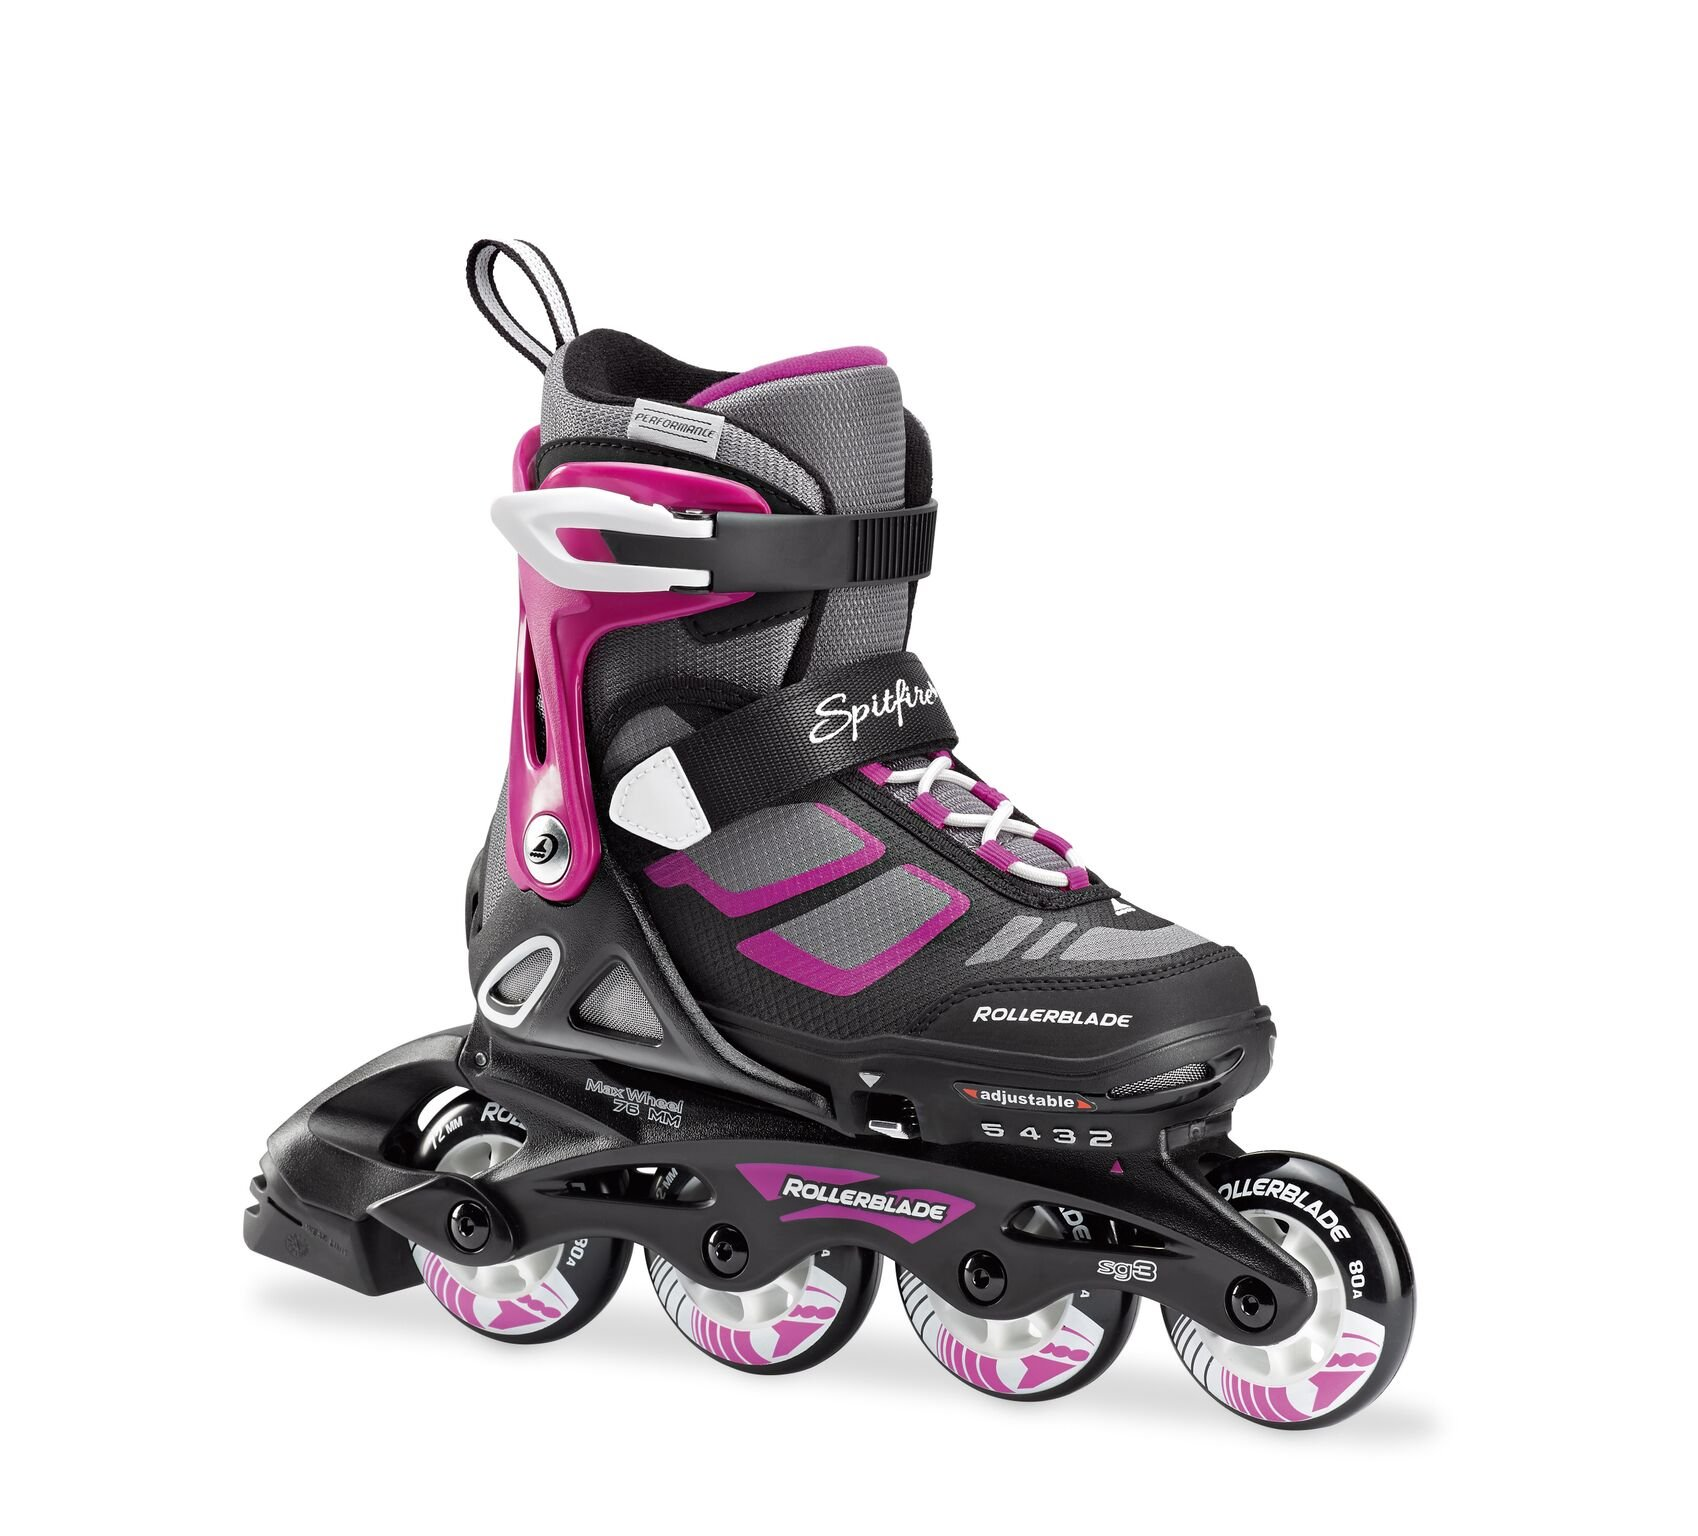 Rollerblade Spitfire XT Girl's Adjustable Fitness Inline Skate, Black and Purple, Junior, Youth Performance Inline Skates, Youth, Junior 5 to 8